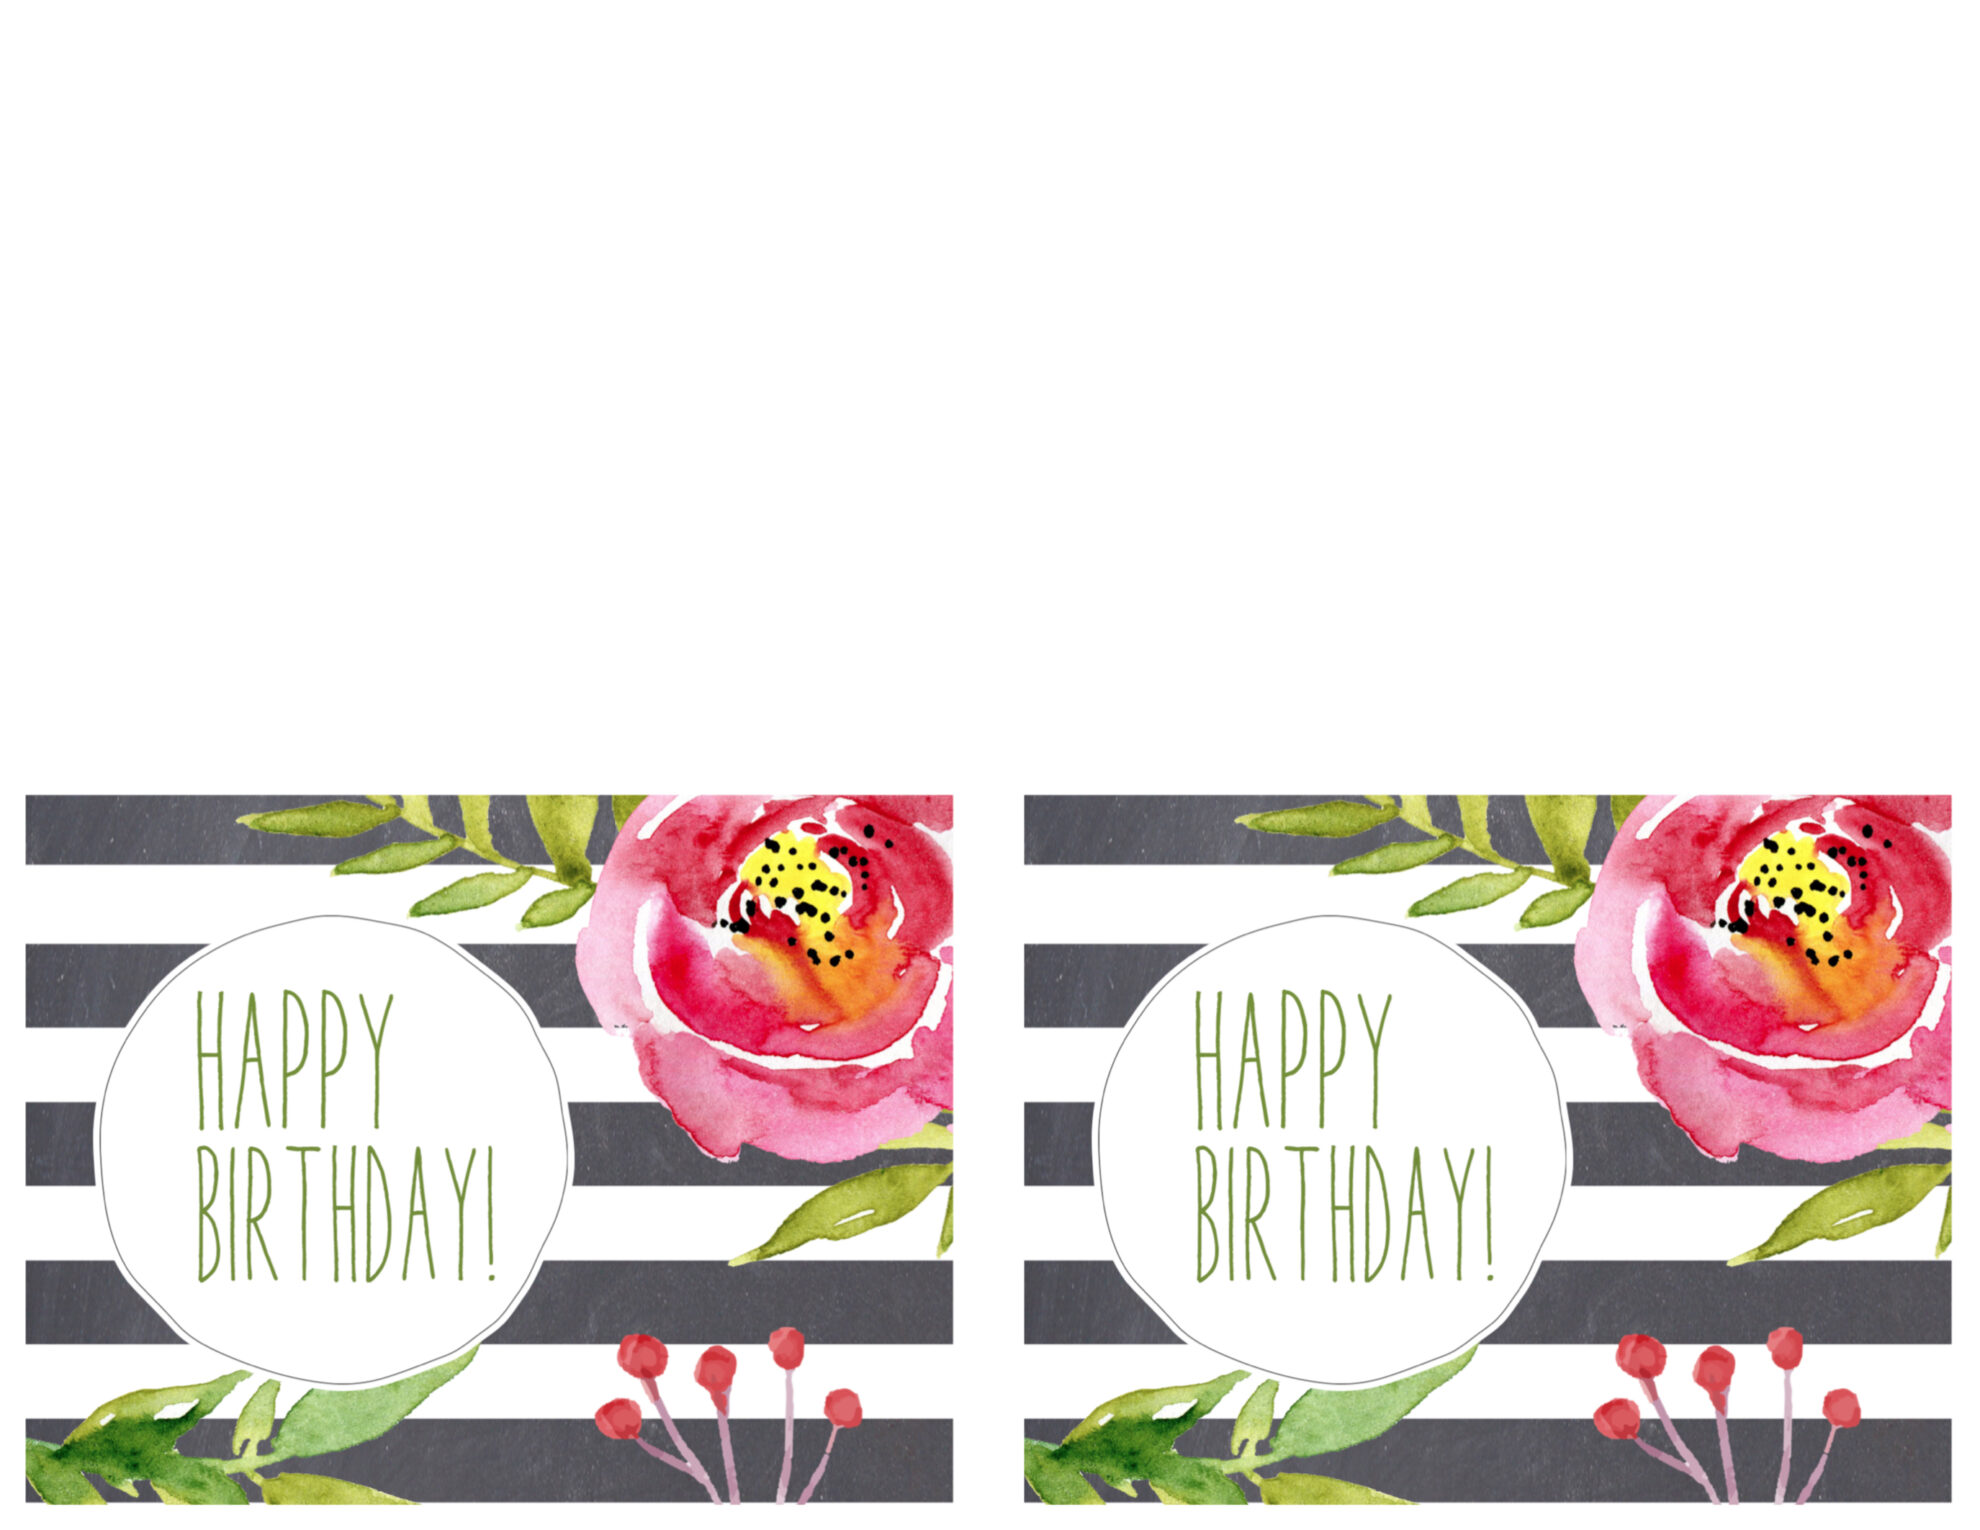 Free printable greeting cards thank you thinking of you birthday click the following links to print the free printable greeting cards kristyandbryce Gallery